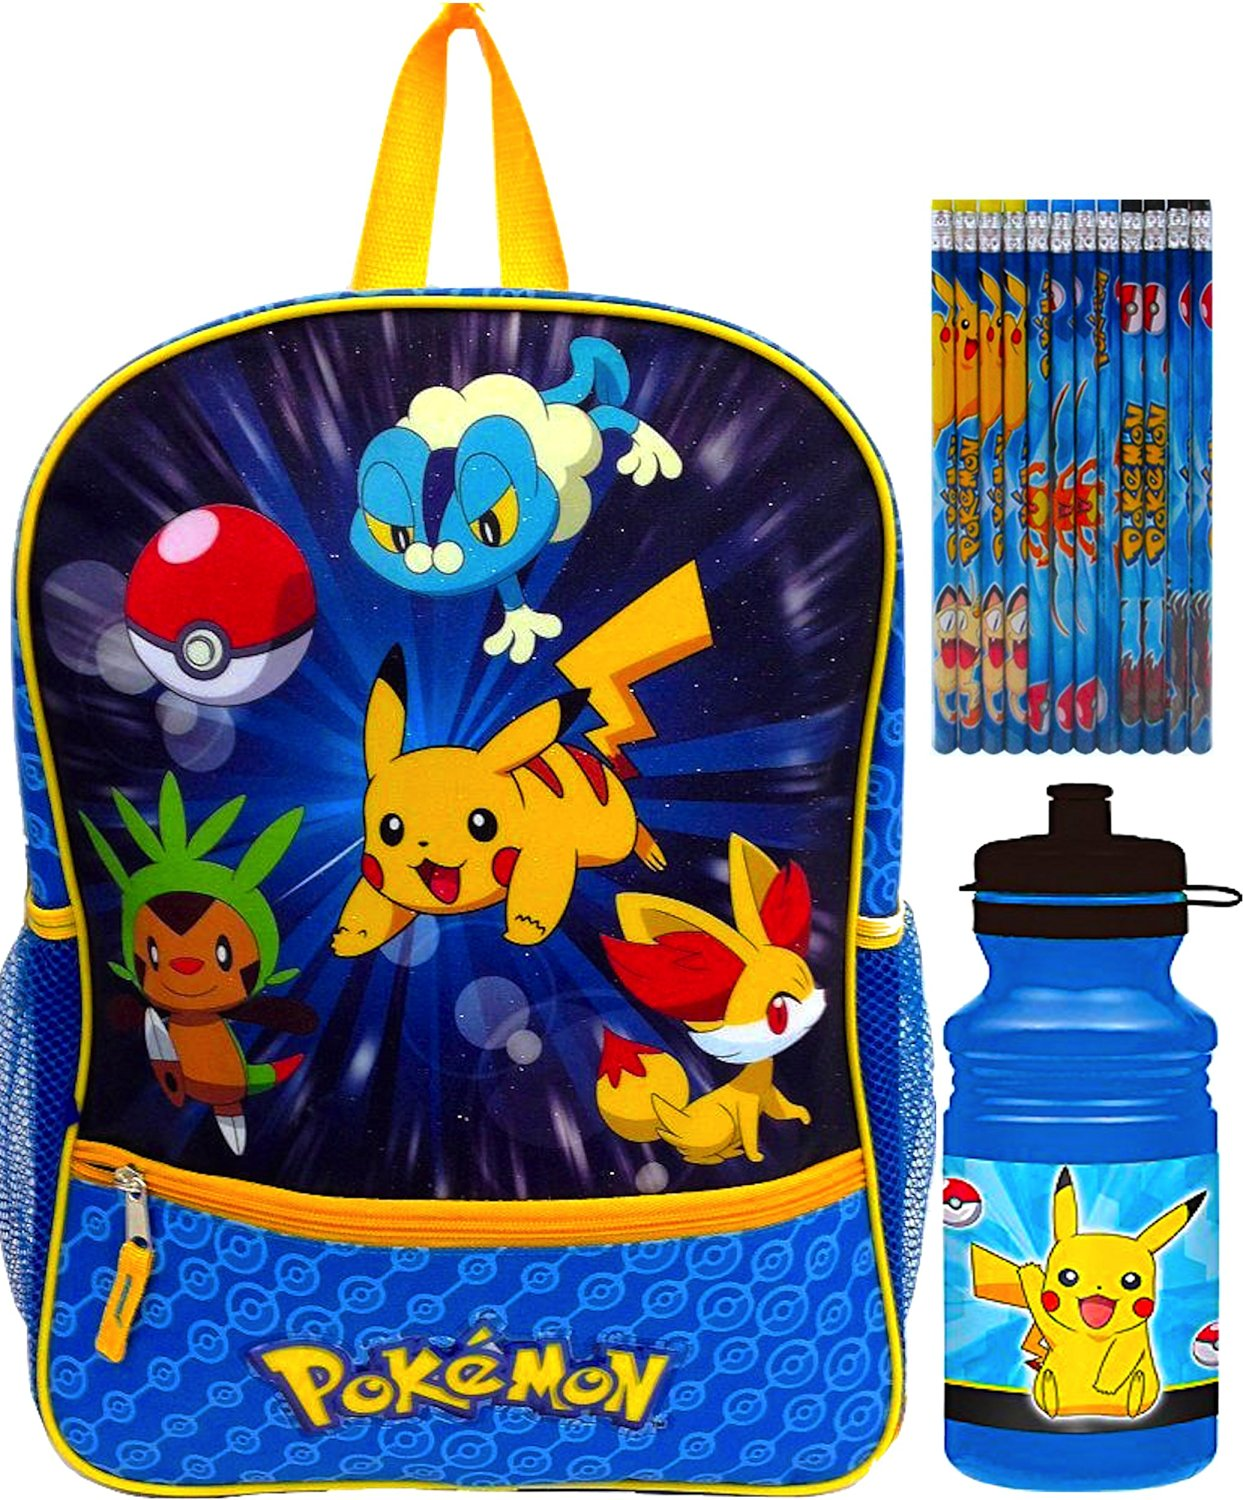 bdeec7620932 Get Quotations · Pokemon Children s School Backpack with Pokemon Water  Bottle and Pokemon Pencils Perfect Back to School Gift